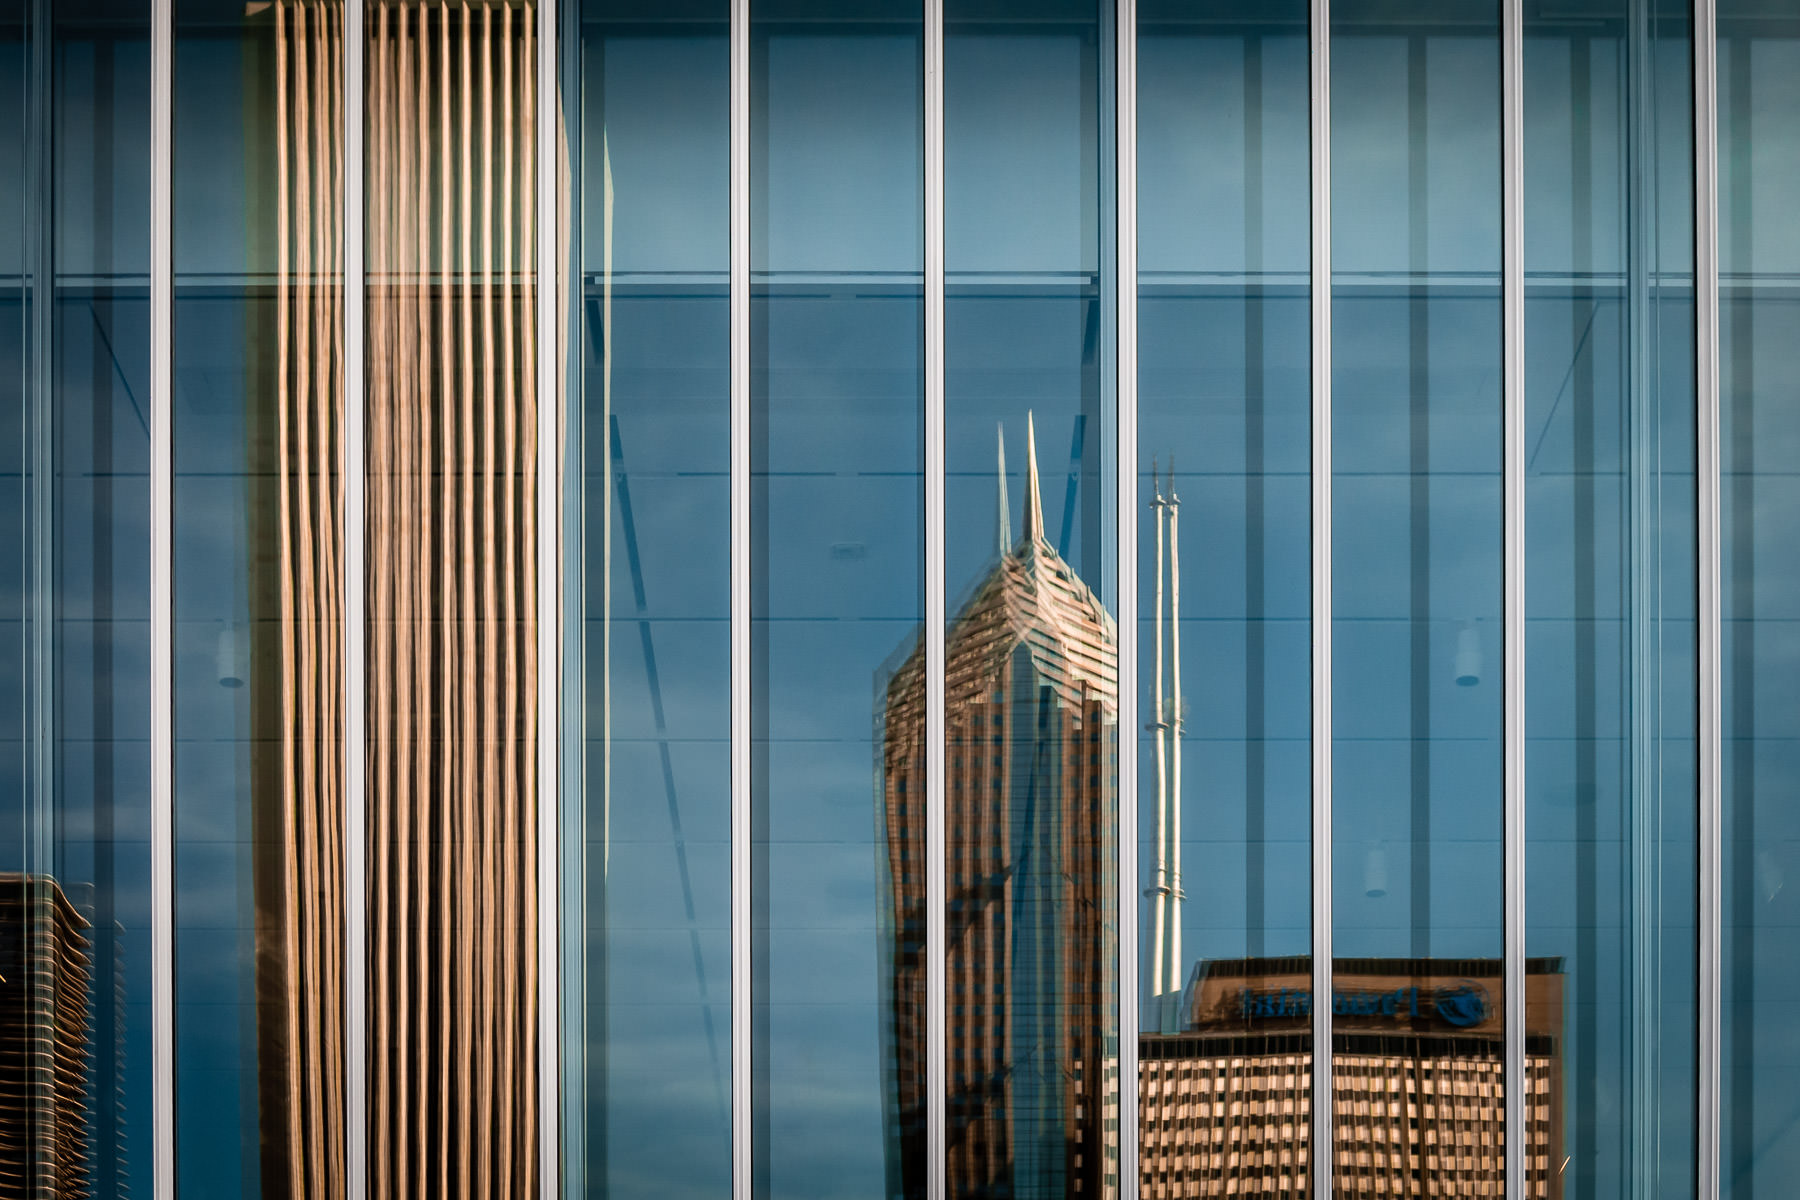 Chicago's Aon Center, Two Prudential Plaza and One Prudential Plaza are reflected in the glass windows of a nearby building.